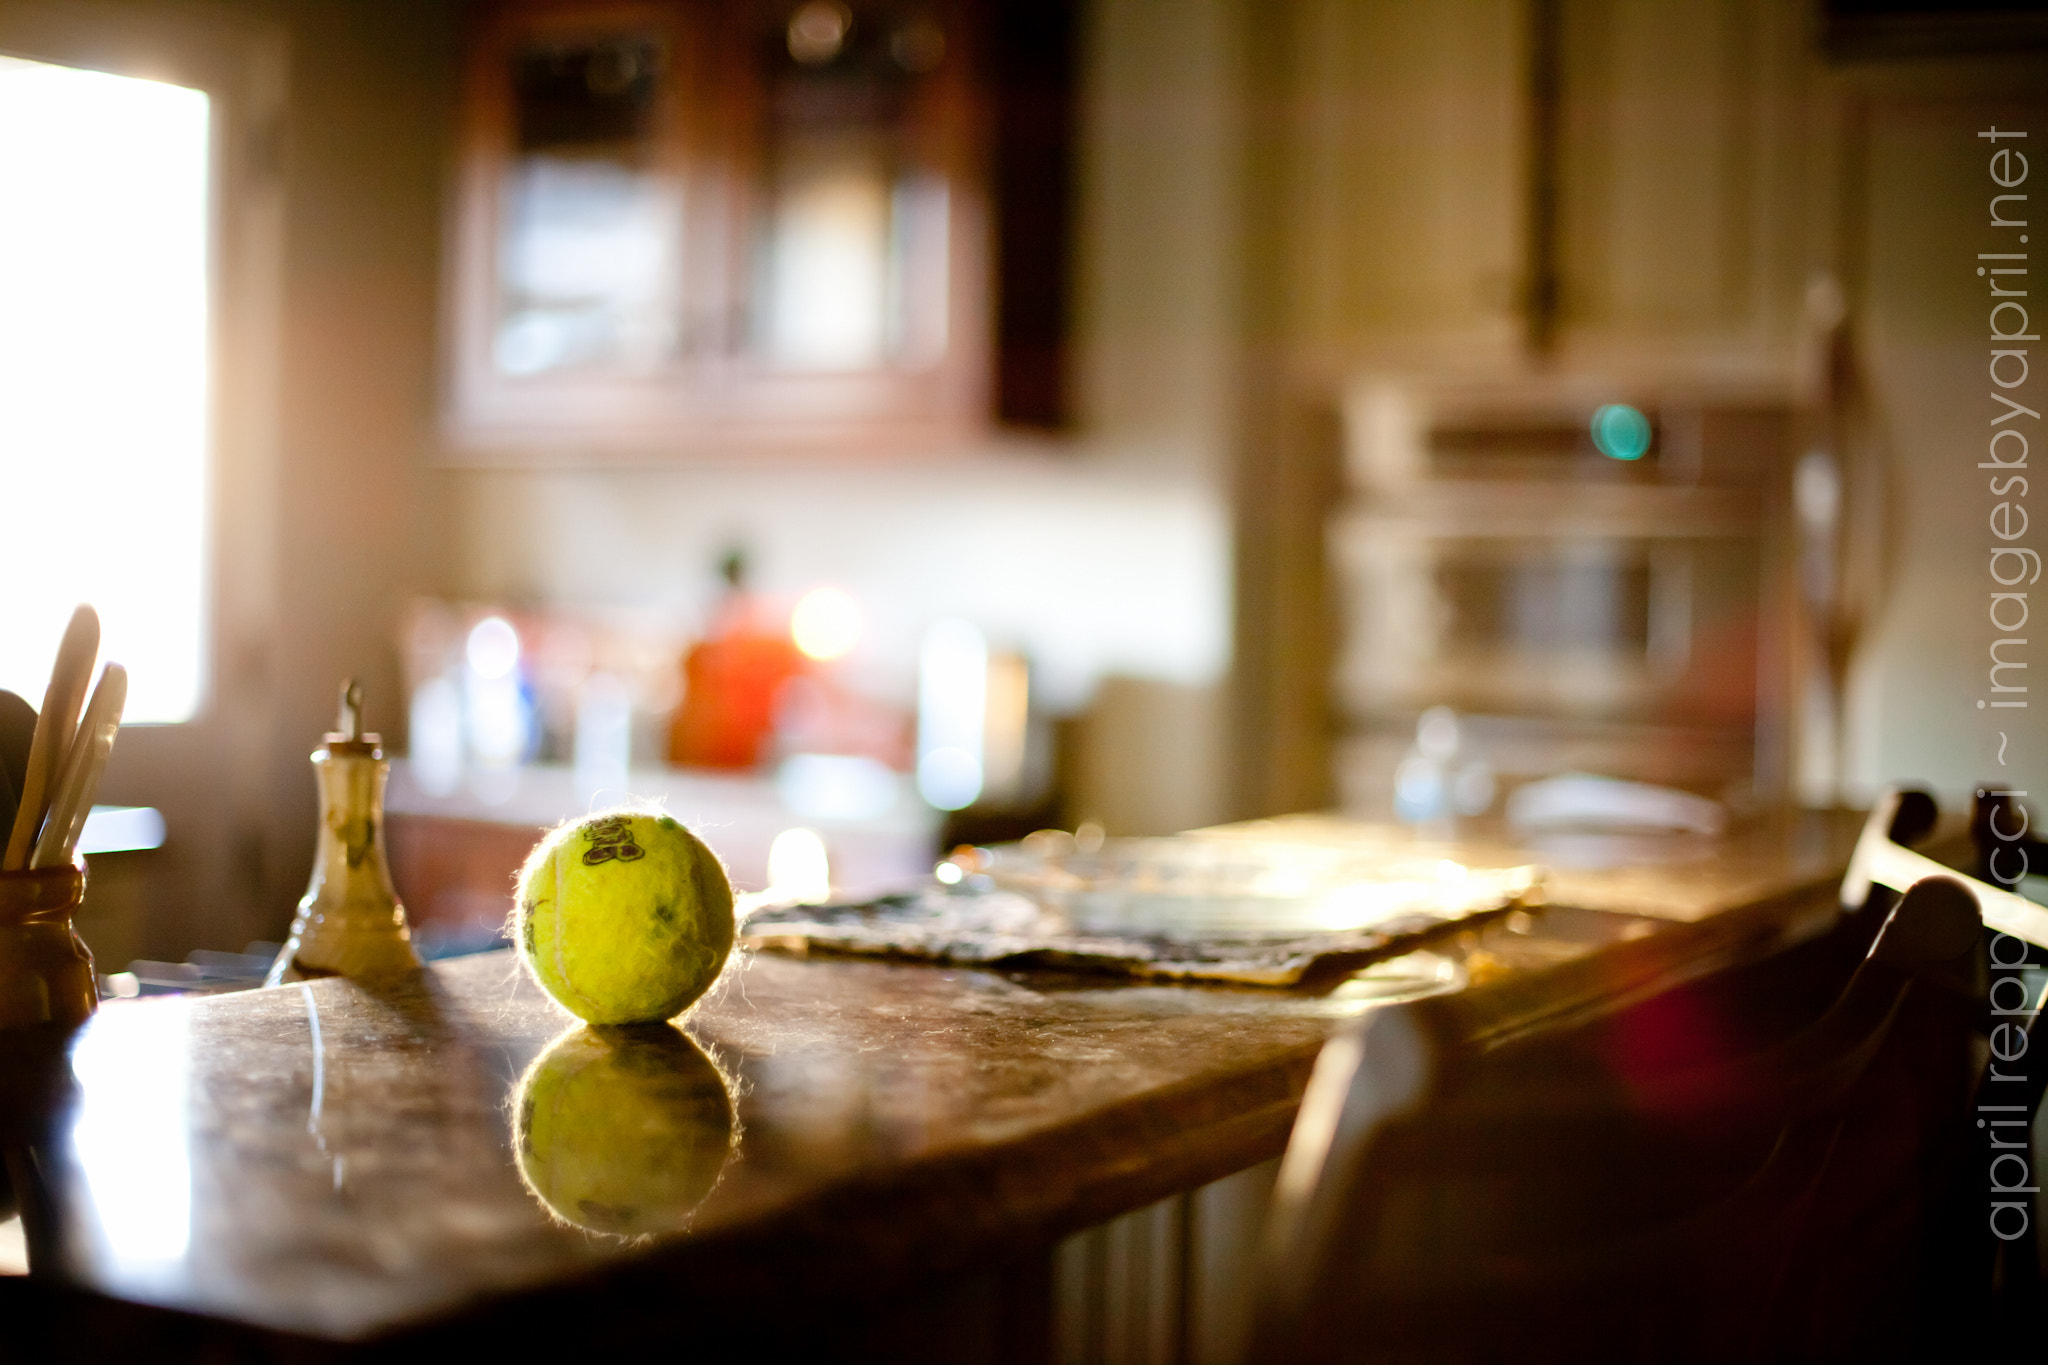 Photograph Ball on The Counter by April Reppucci on 500px